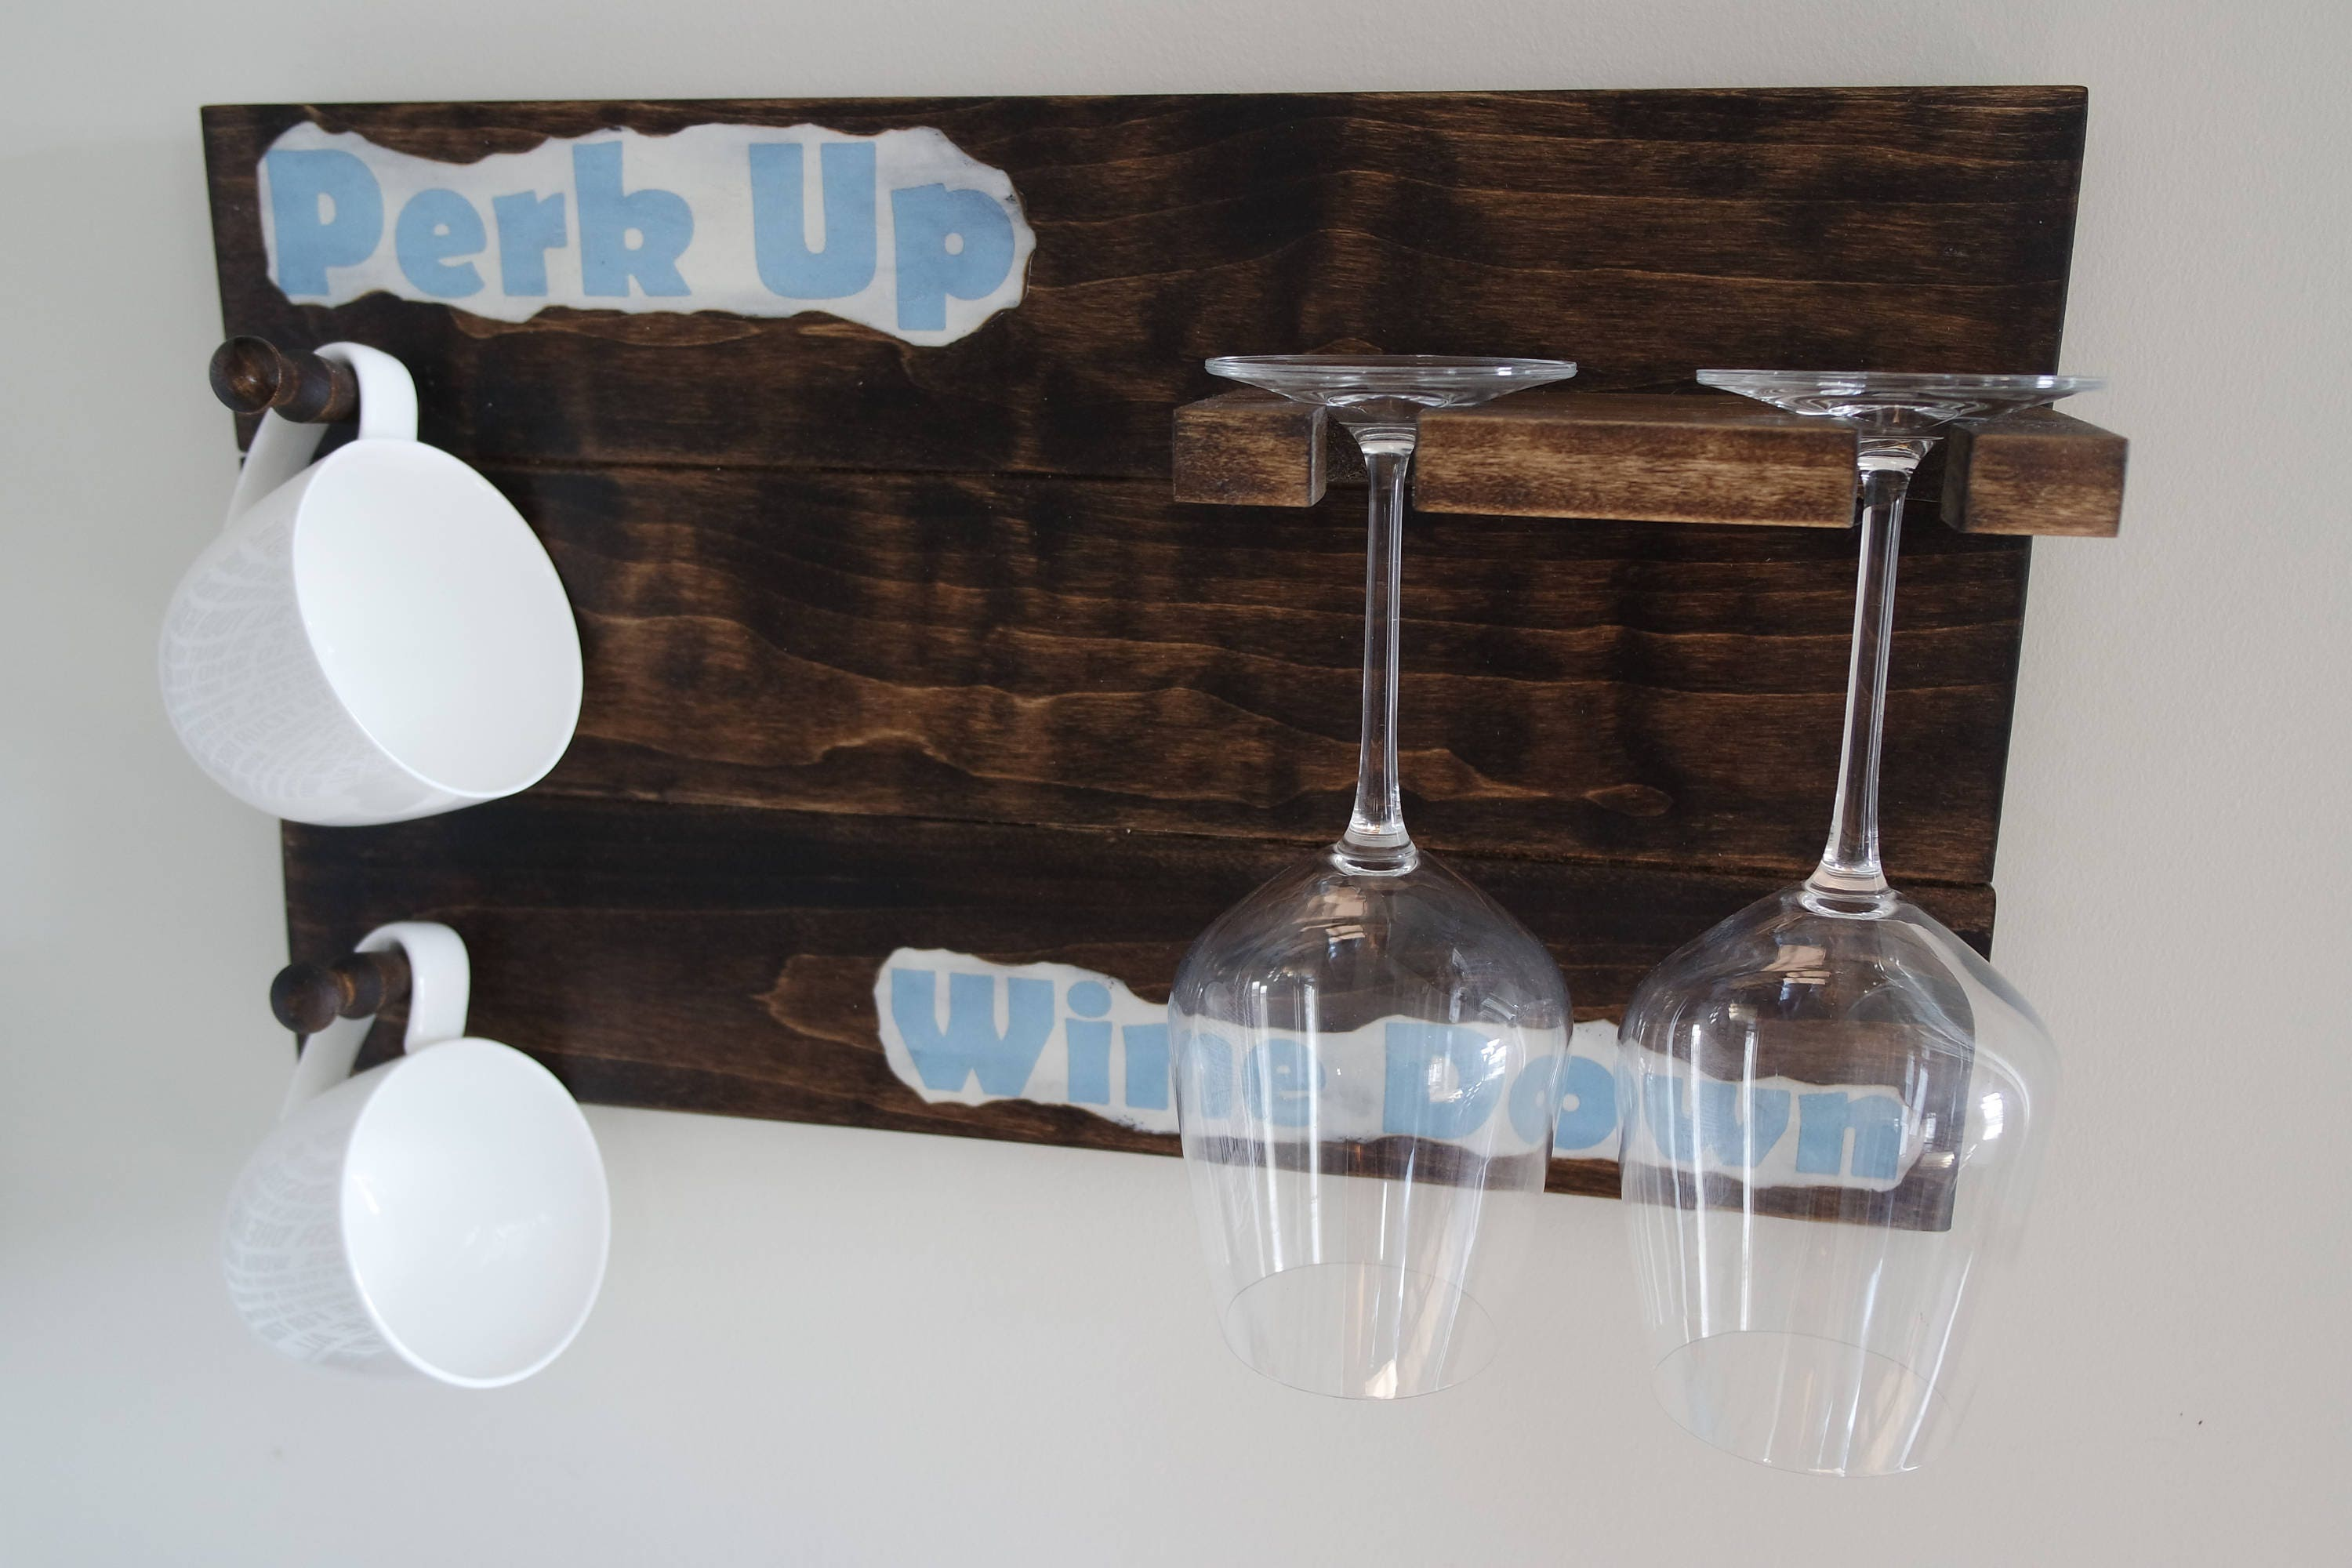 the bisita of guam hanging commercial rack racks elegant image wooden storage wine glass